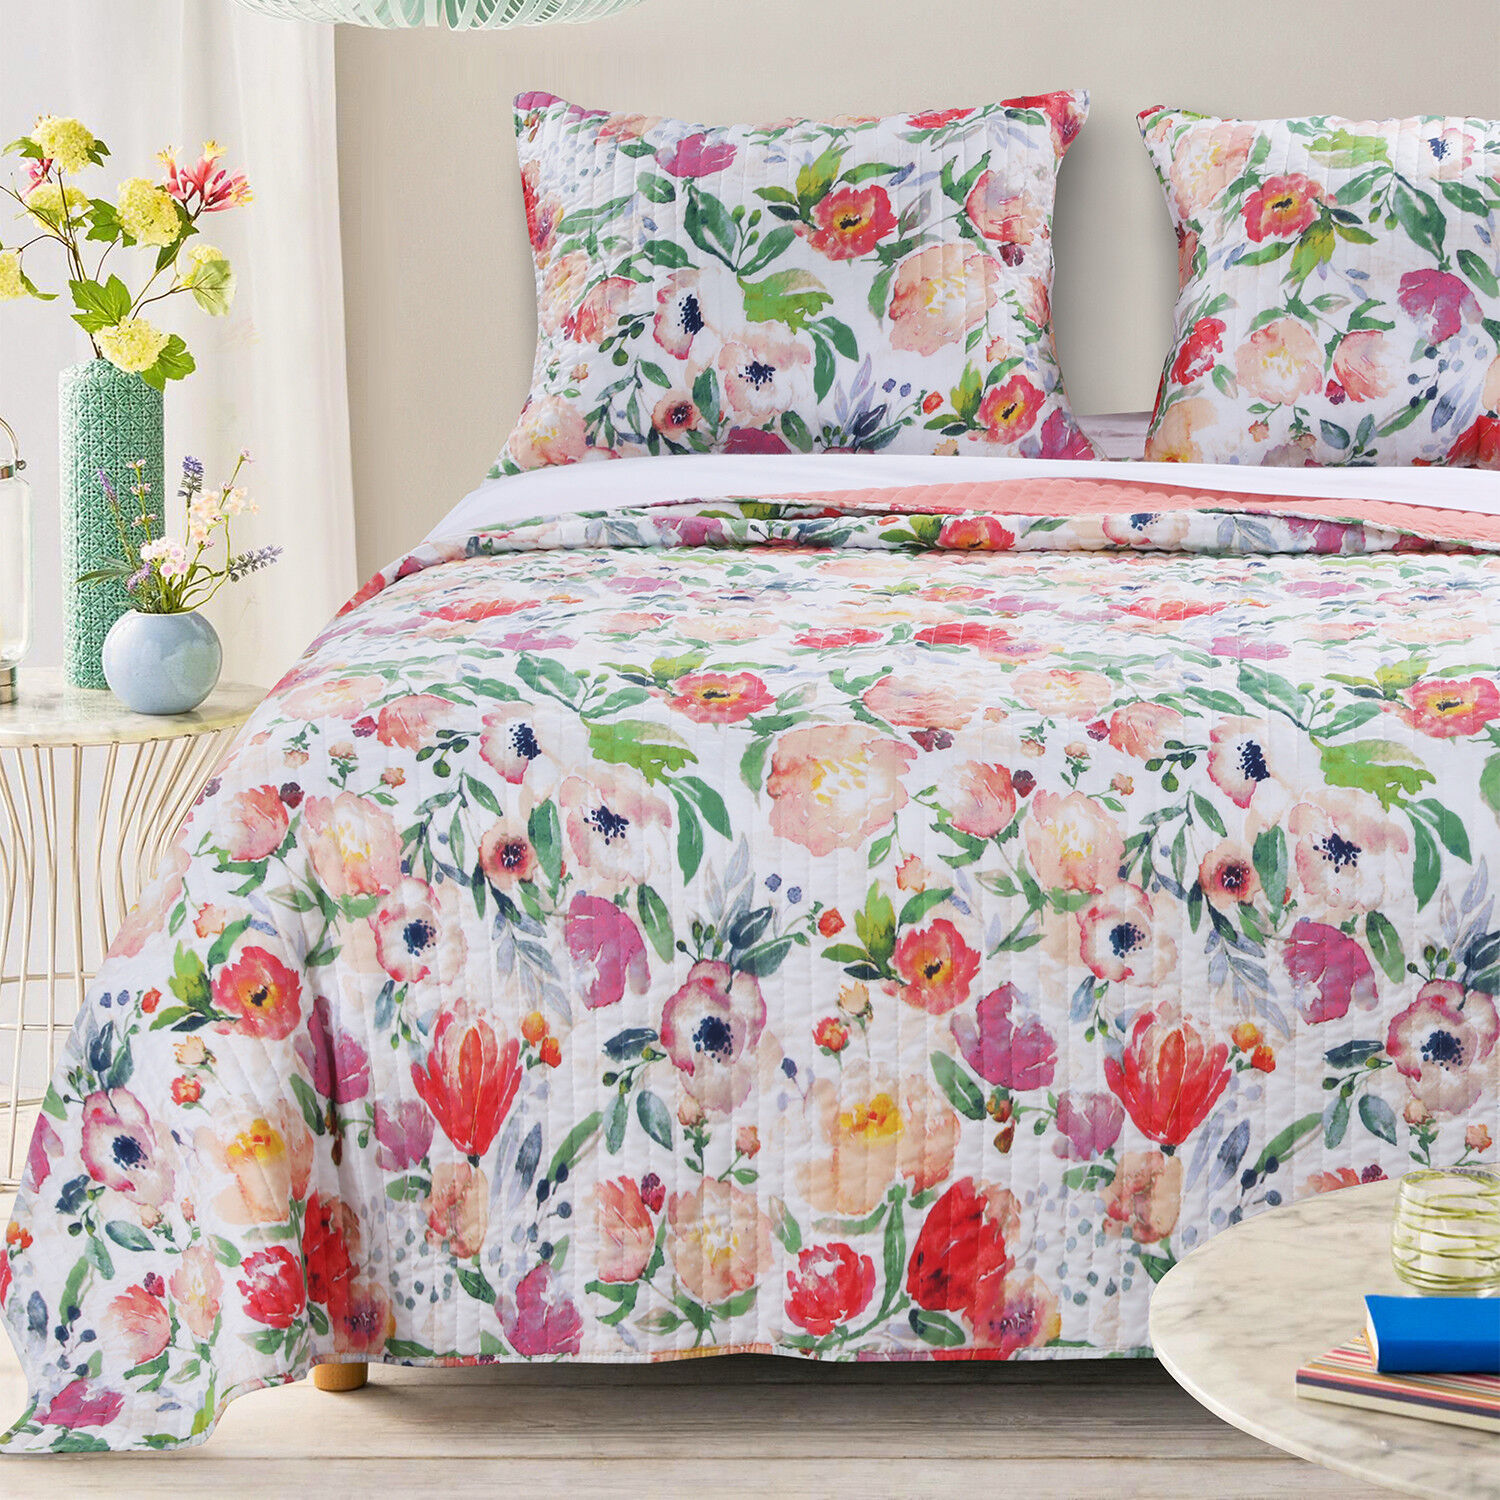 BLOSSOM 3pc King Quilt Set Floral Poppy Garden Nature Country Barefoot Bungalow